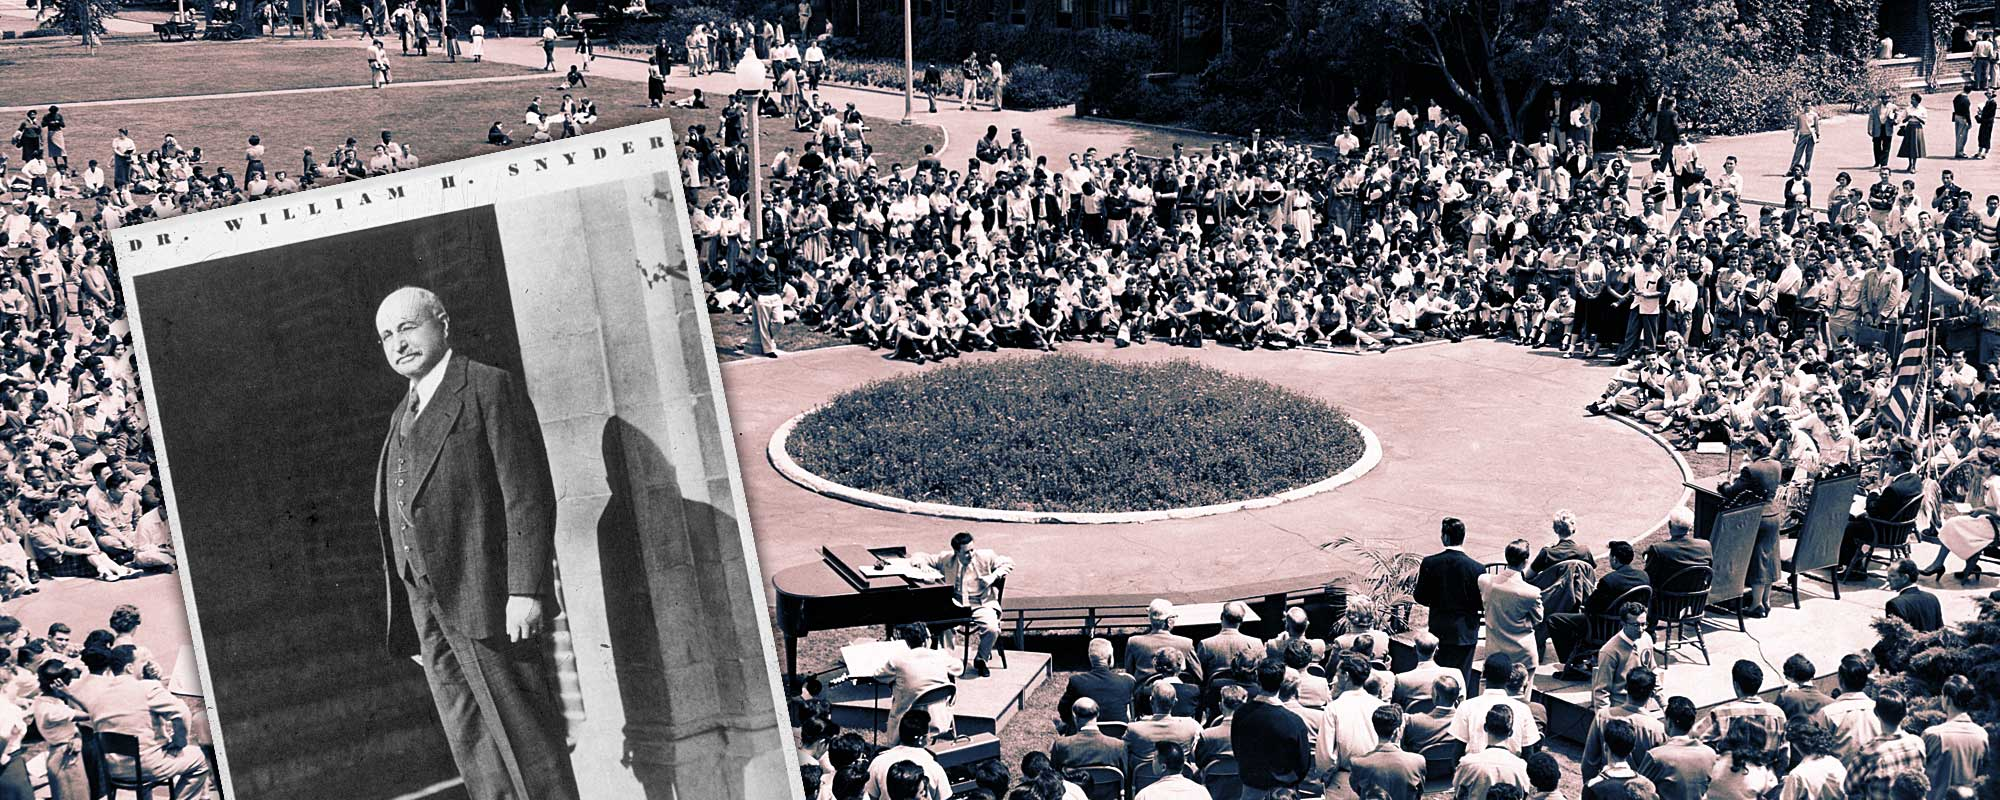 Dr. William H. Snyder, Director of LACC in 1929. Students gather in the quad in 1954 for the 25th Anniversary Celebration.